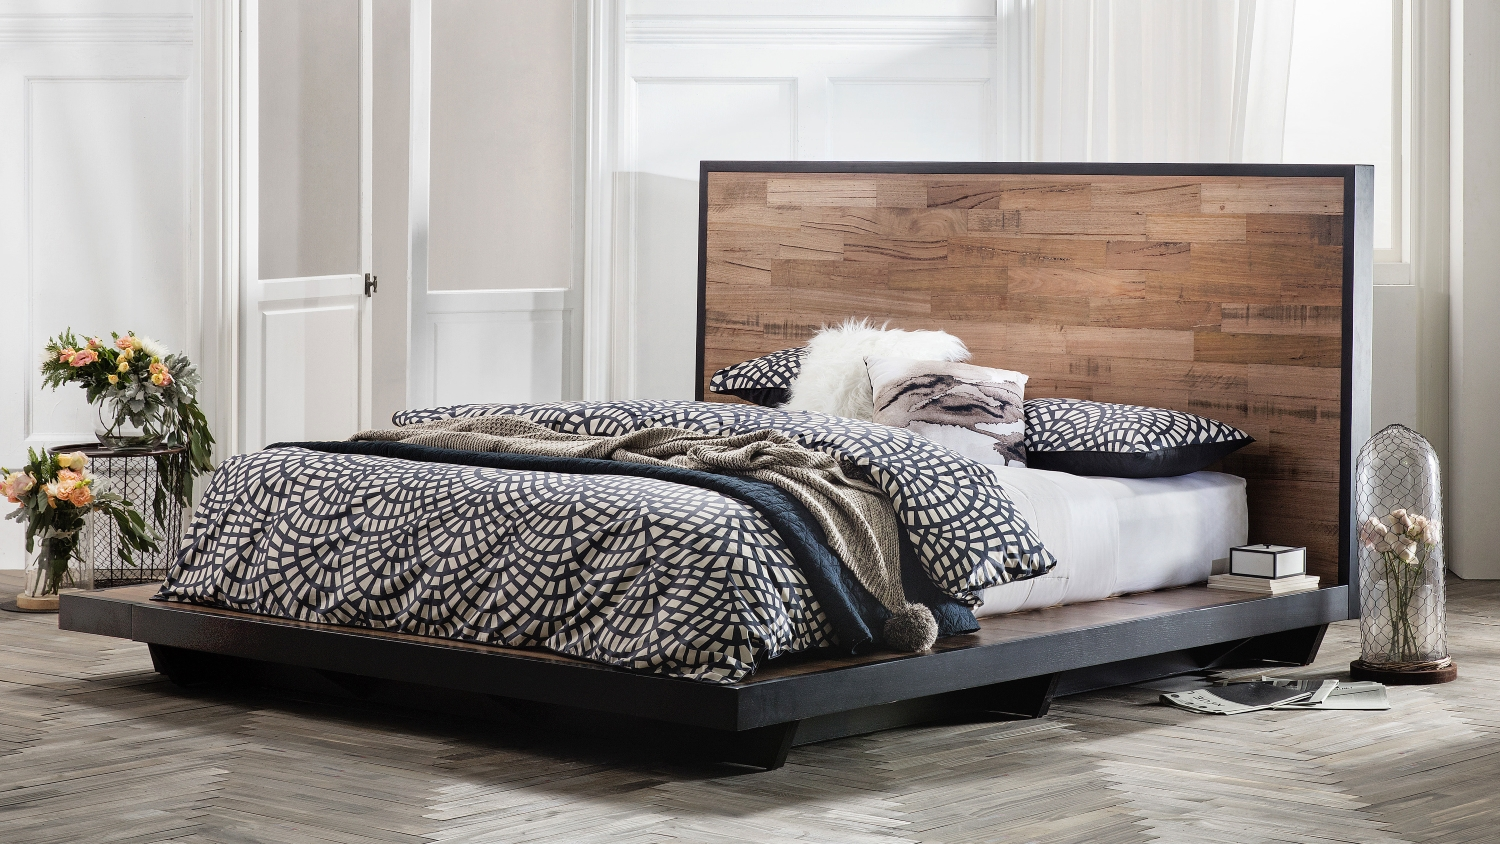 Super King Bed Frames Australia Abode Bed Frame Domayne